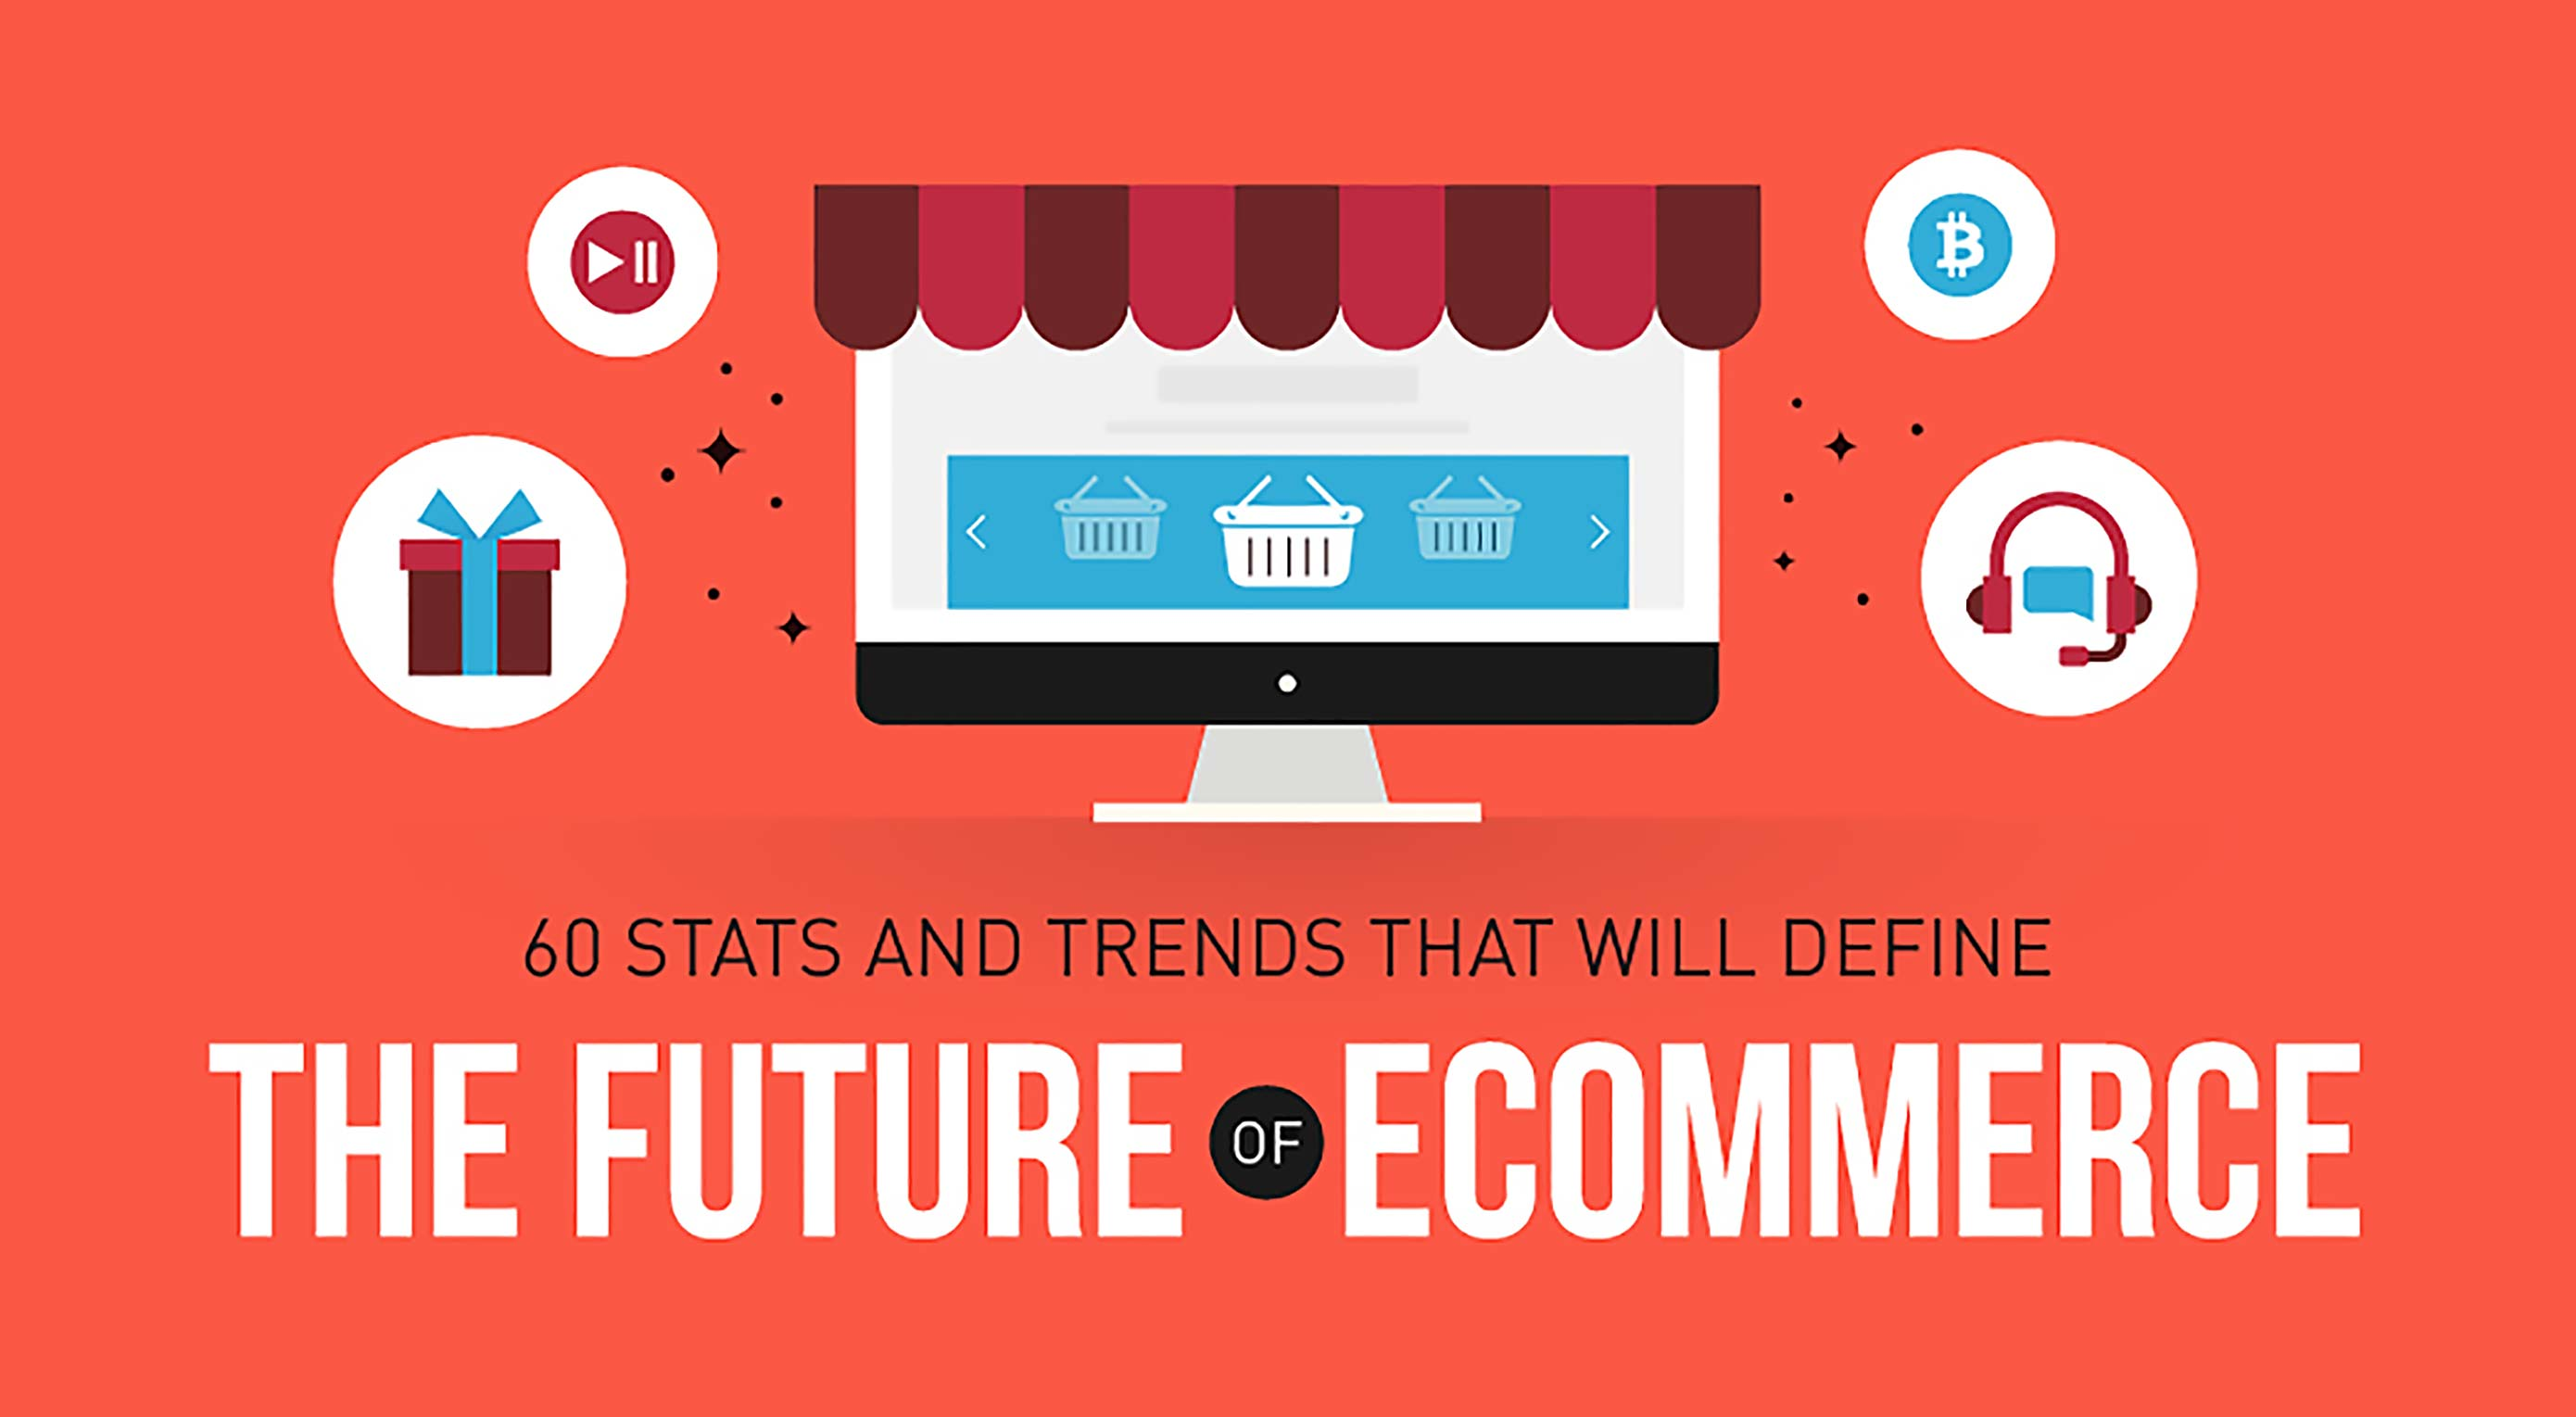 Infographic: The Future of E-Commerce